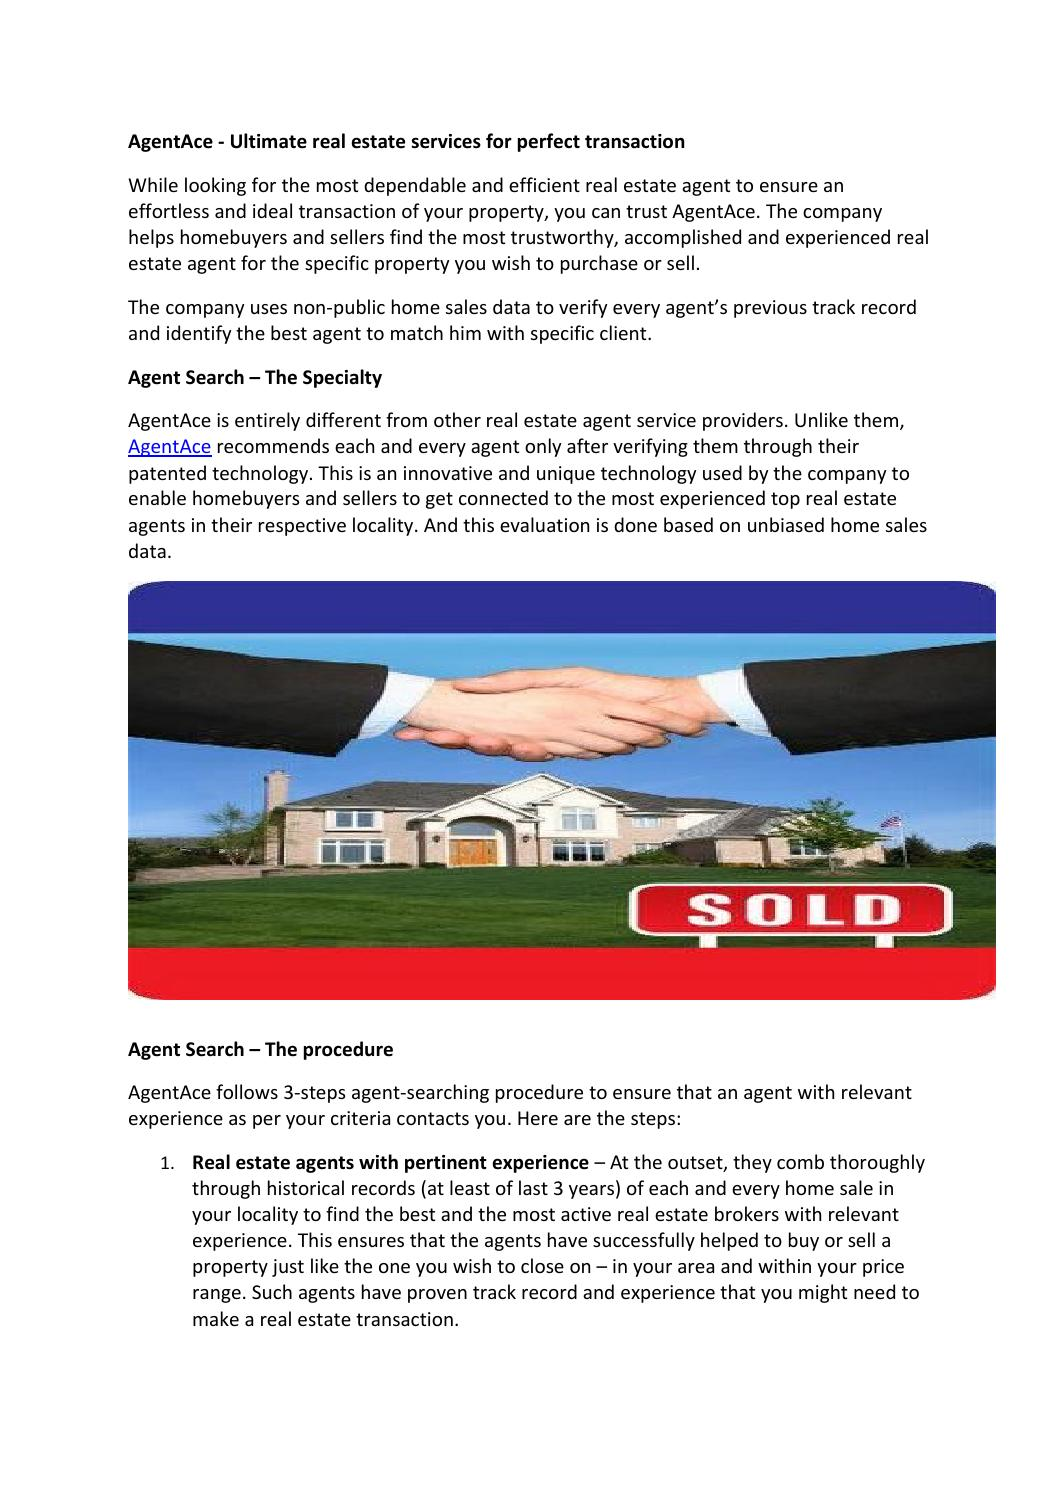 Agentace - ultimate real estate services for perfect